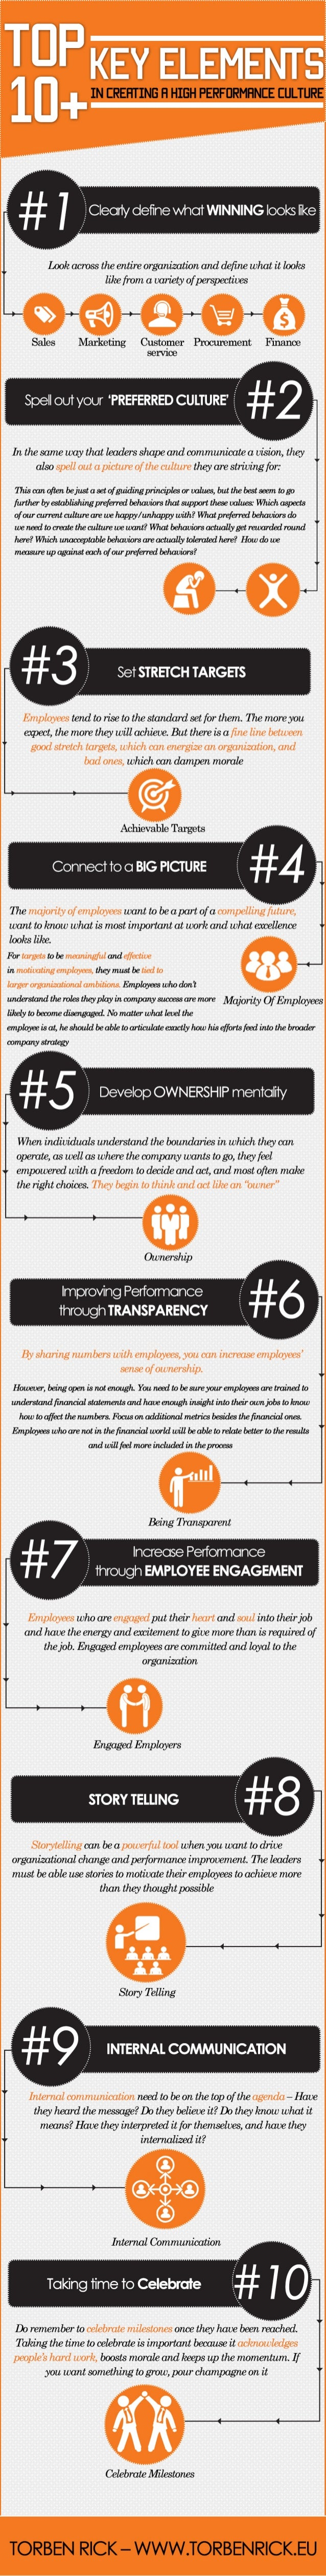 Infographic: How to create a high performance organization